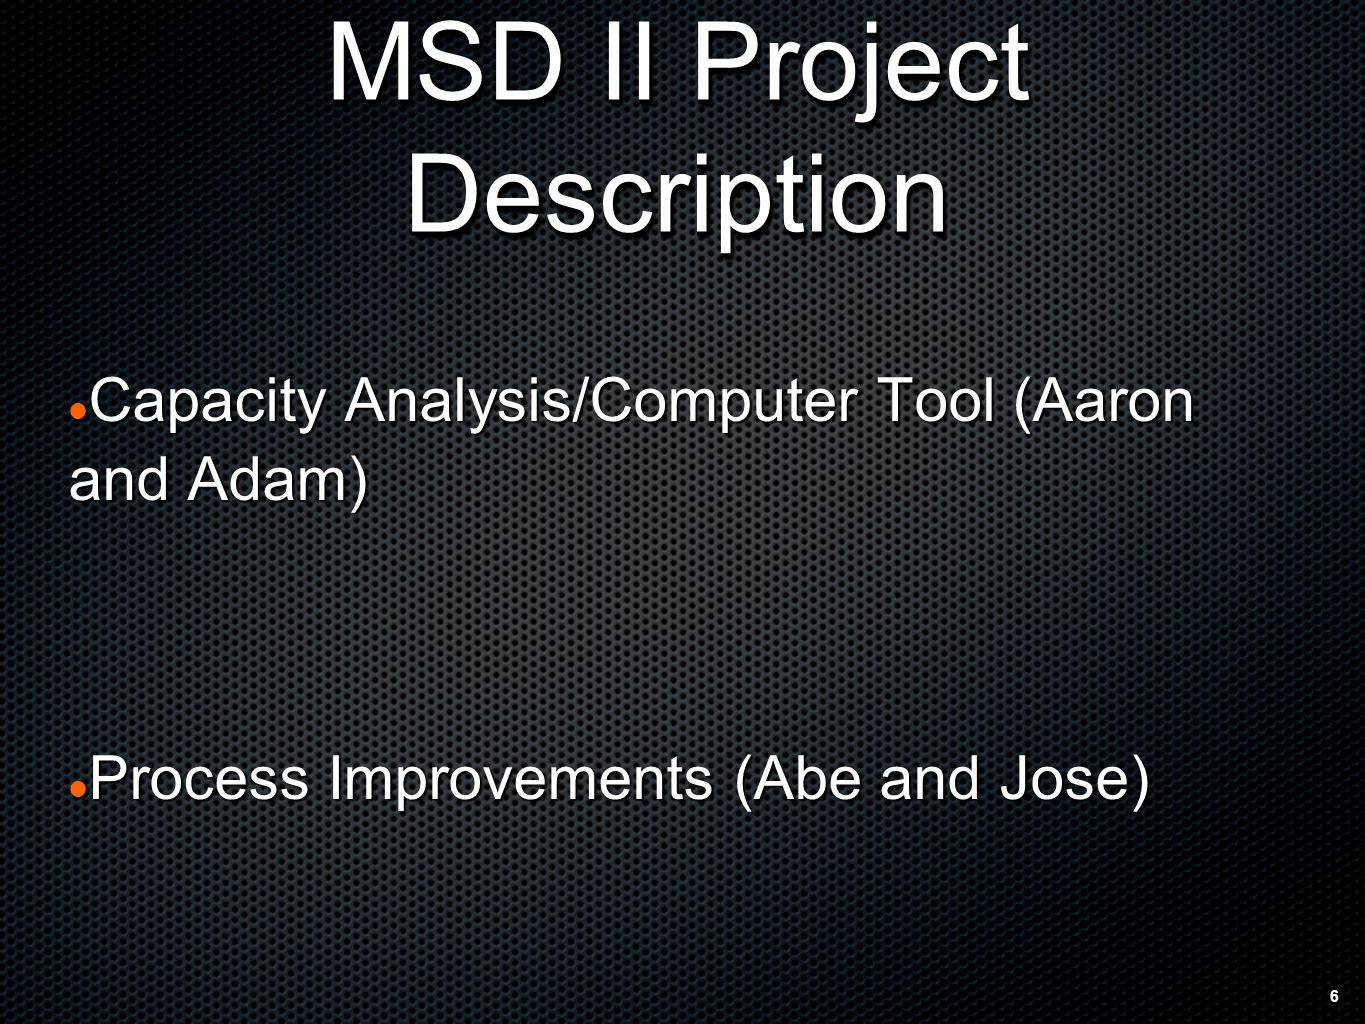 6 MSD II Project Description Capacity Capacity Analysis/Computer Tool (Aaron and Adam) Process Process Improvements (Abe and Jose)